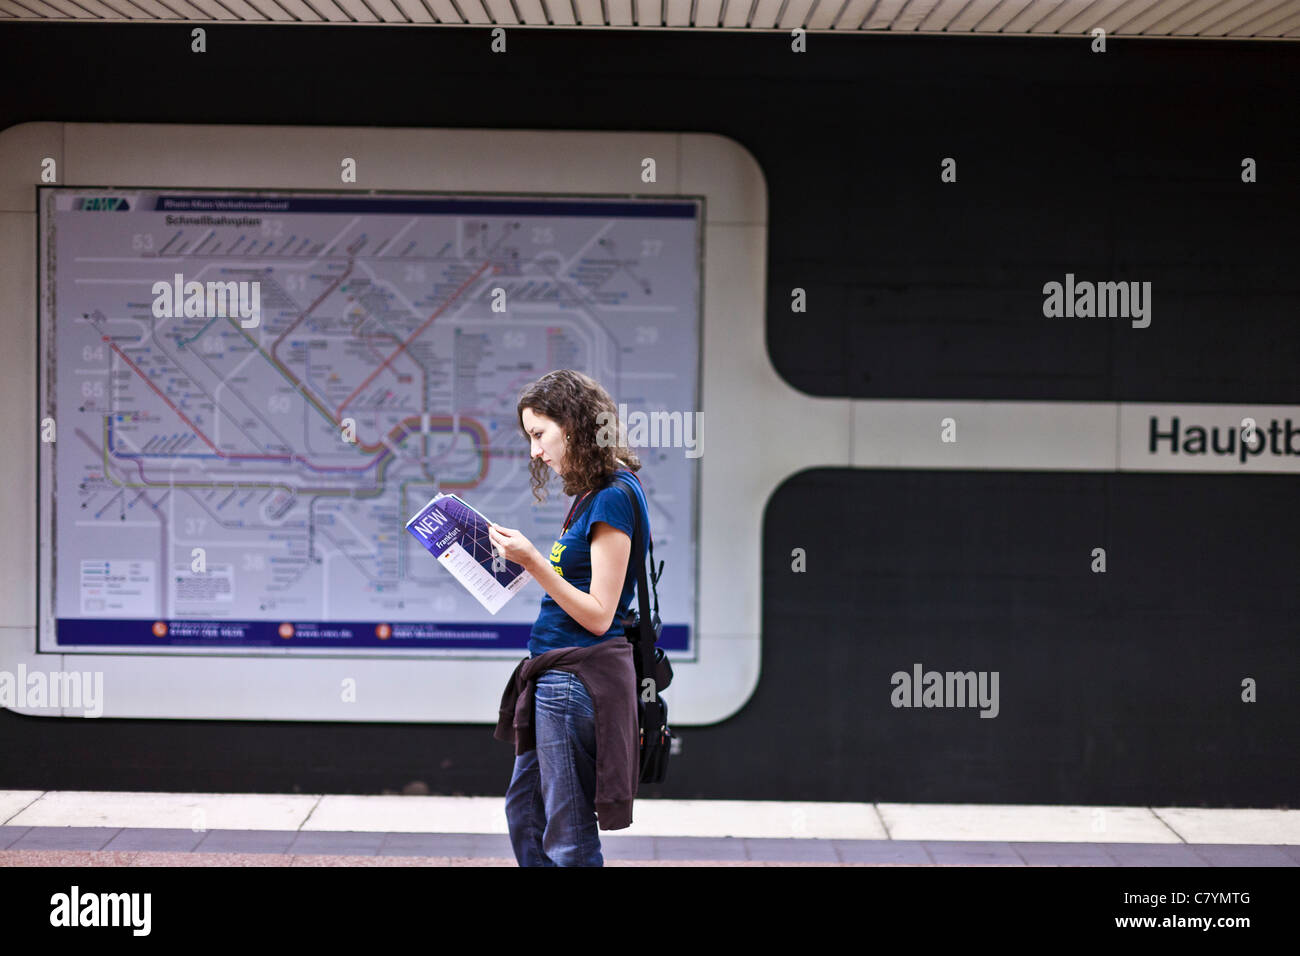 Women reading a travel guide in the main underground station in Frankfurt am Main. Stock Photo